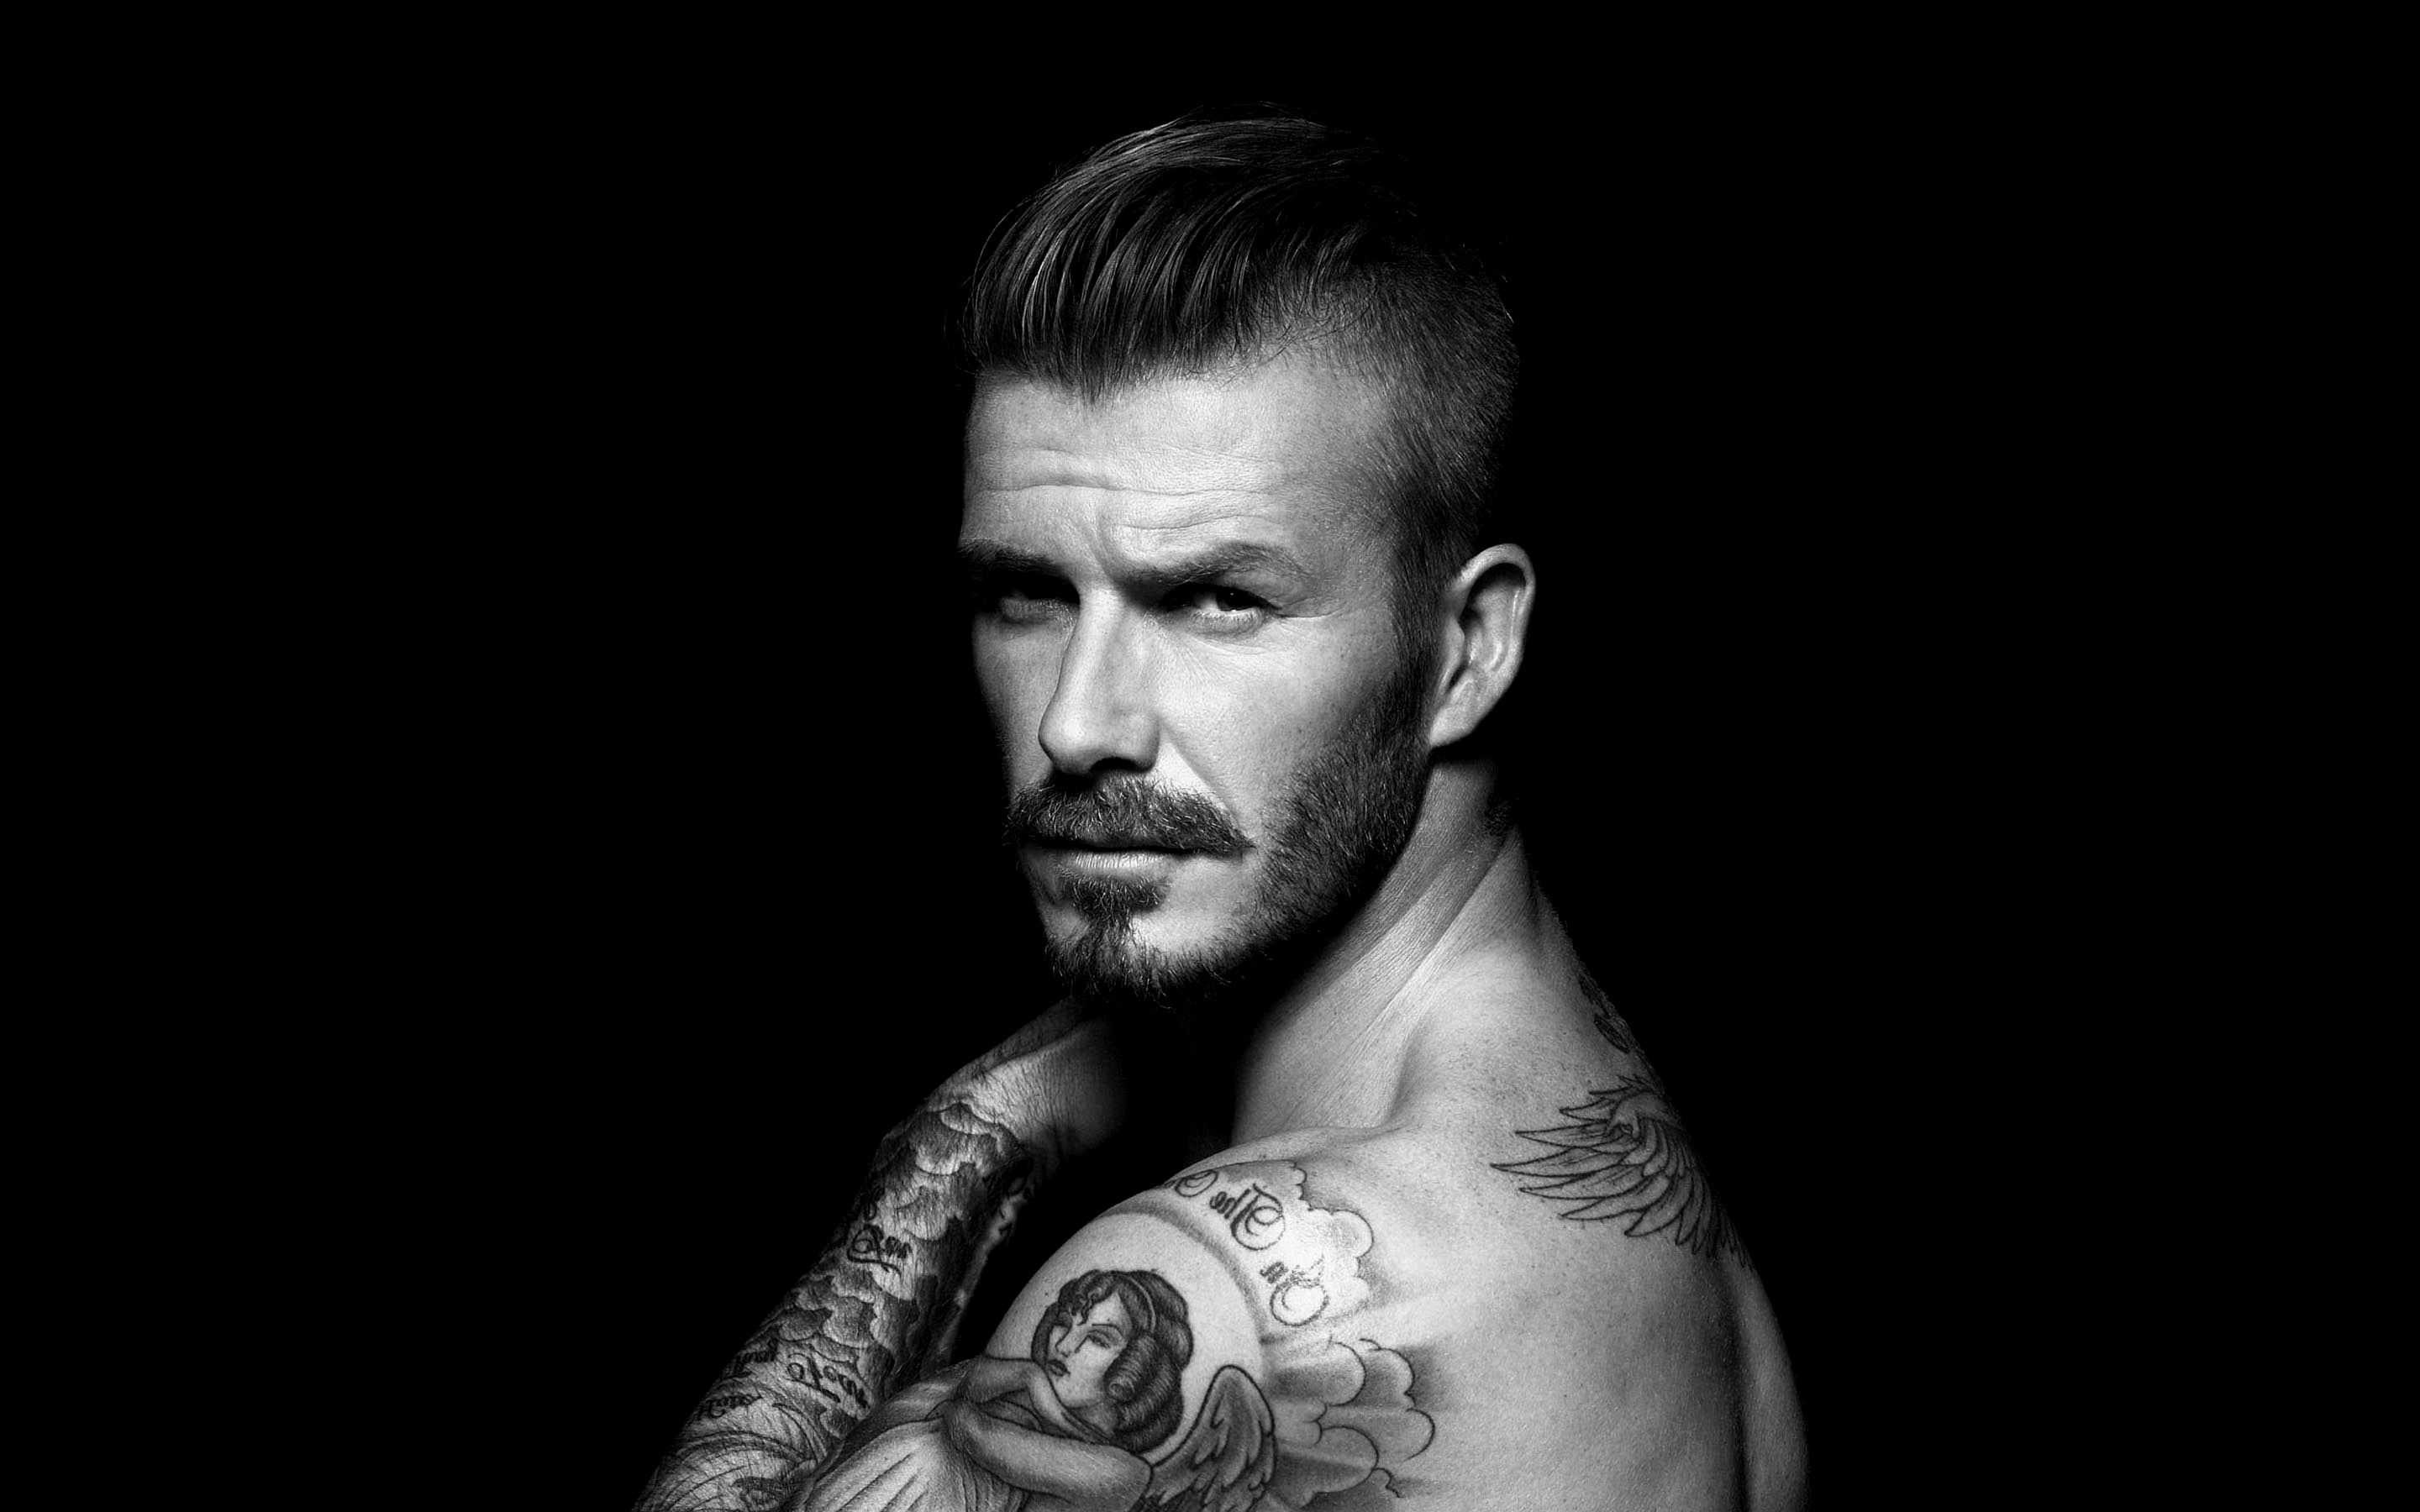 Res: 2880x1800, Wallpaper For David Beckham Hairstyle Hd Images Of Laptop